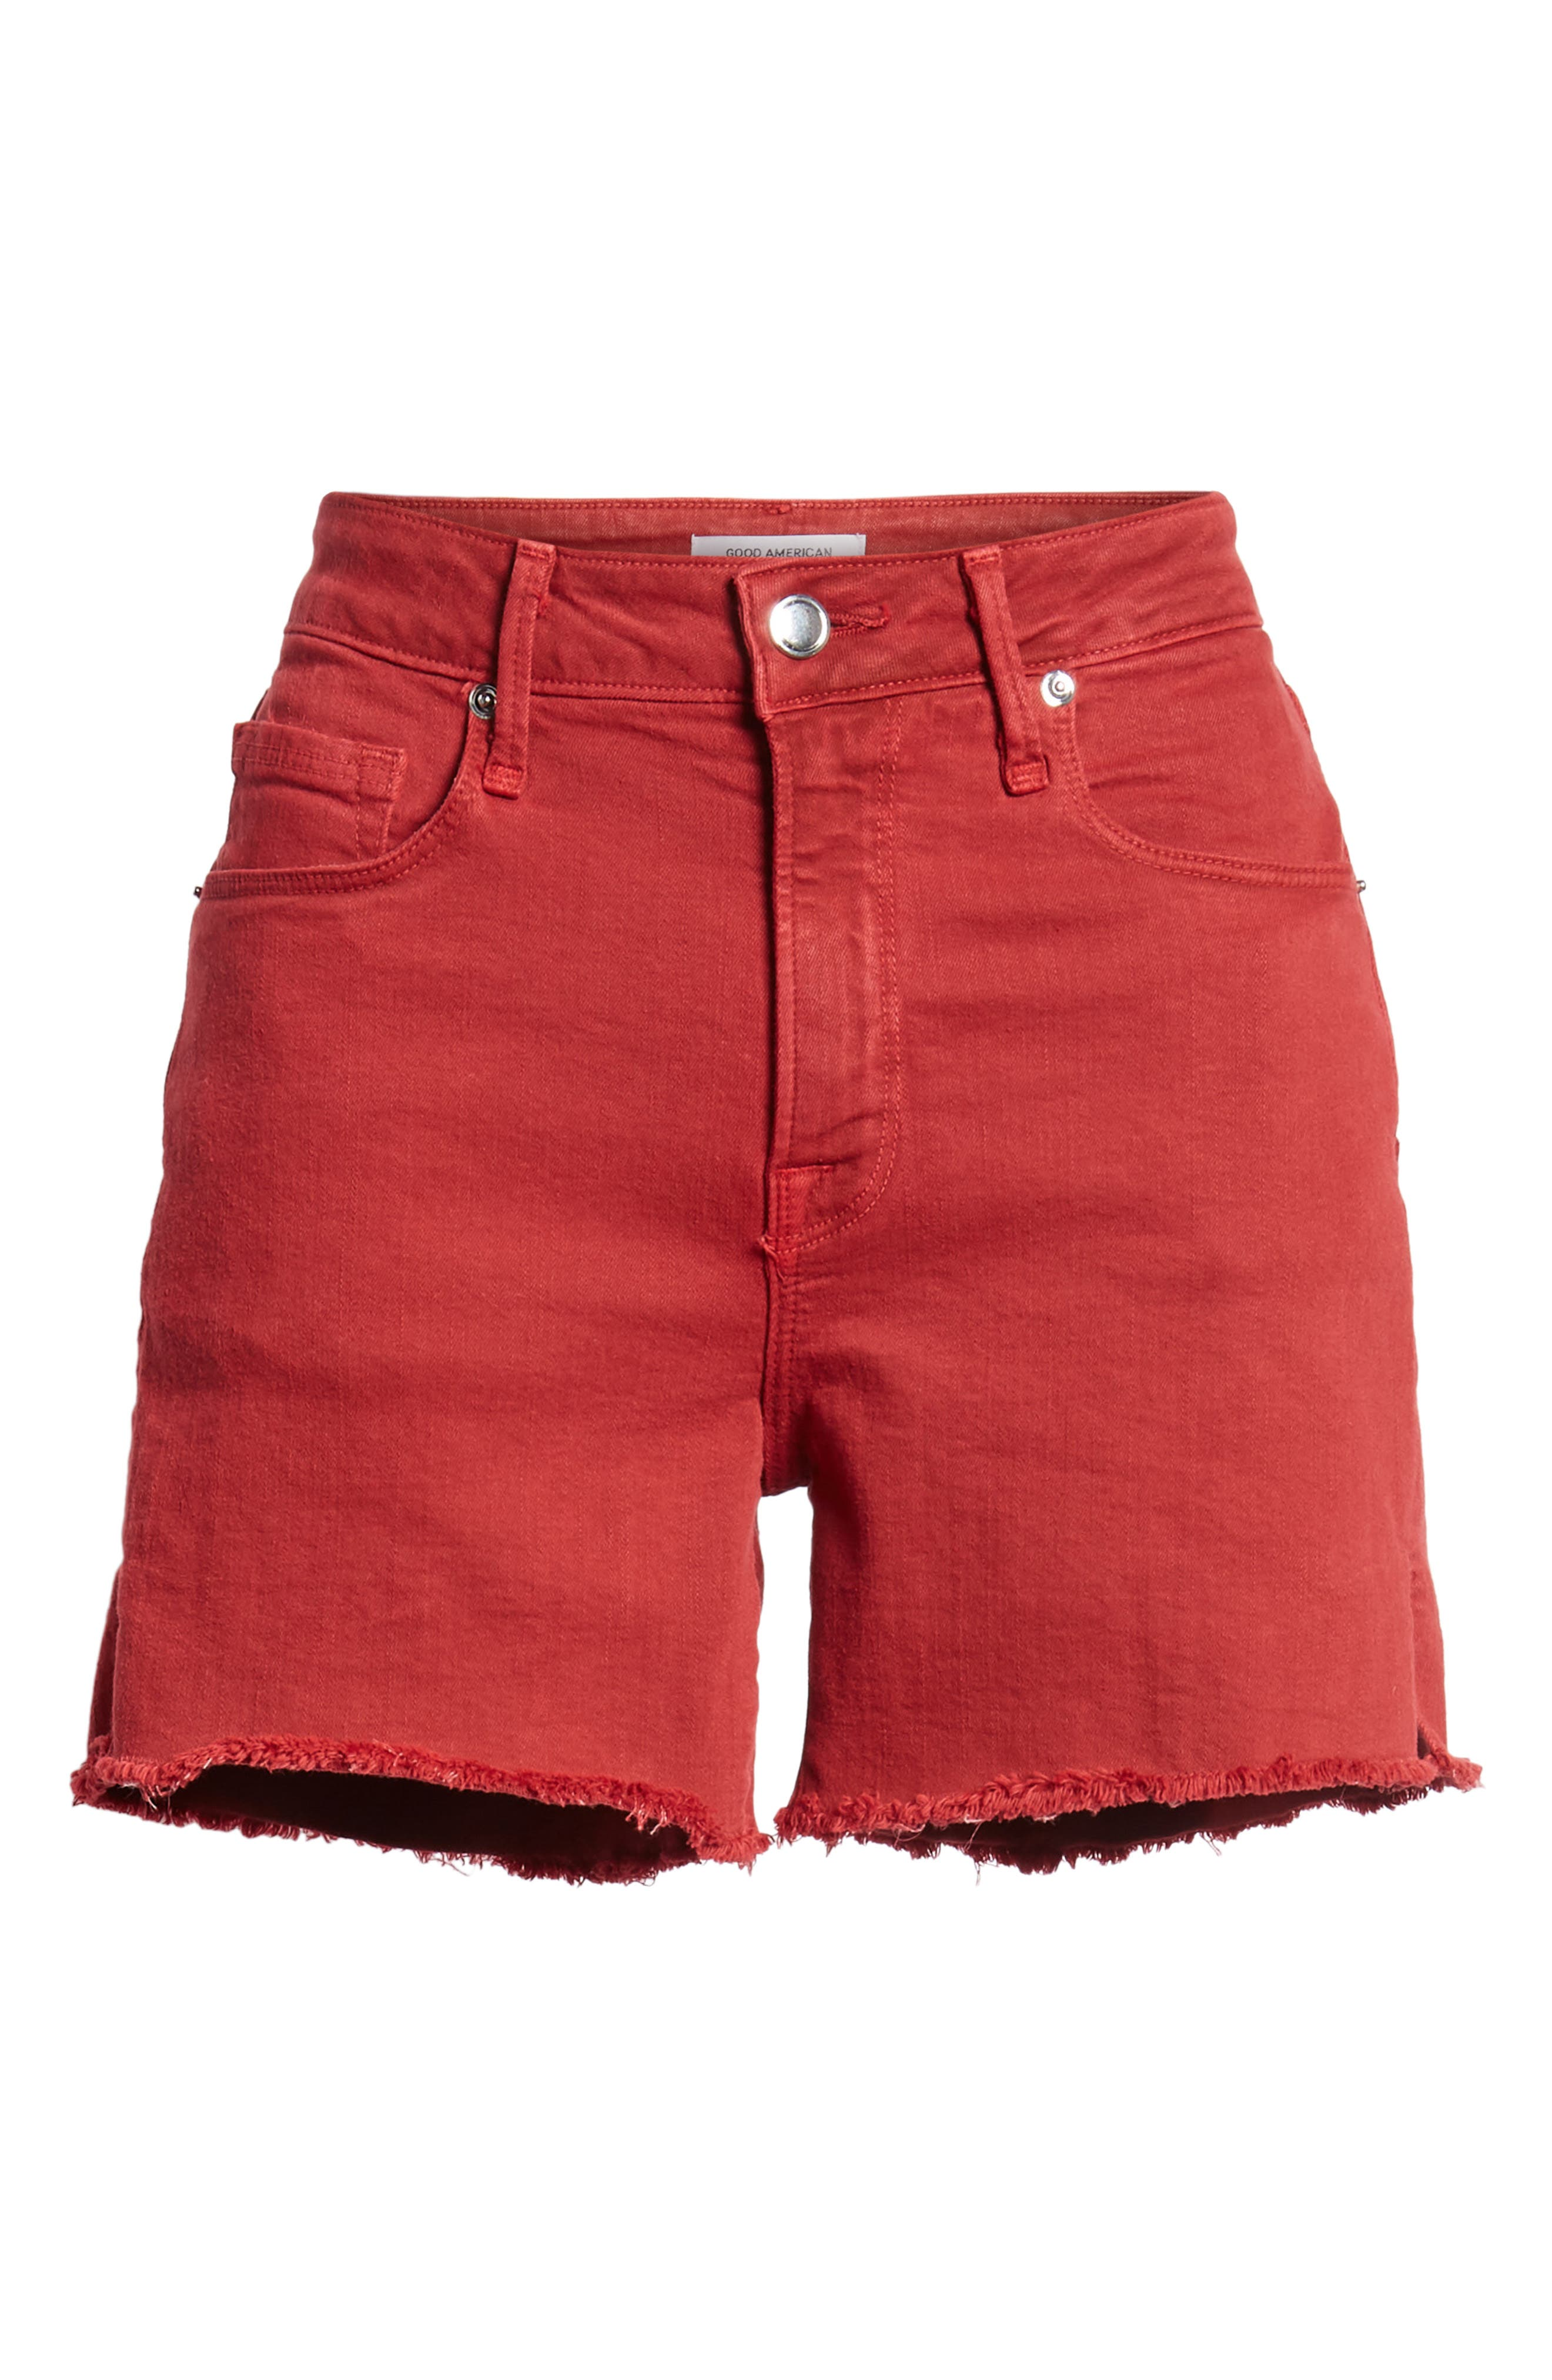 High Waist Cutoff Shorts,                             Alternate thumbnail 7, color,                             601